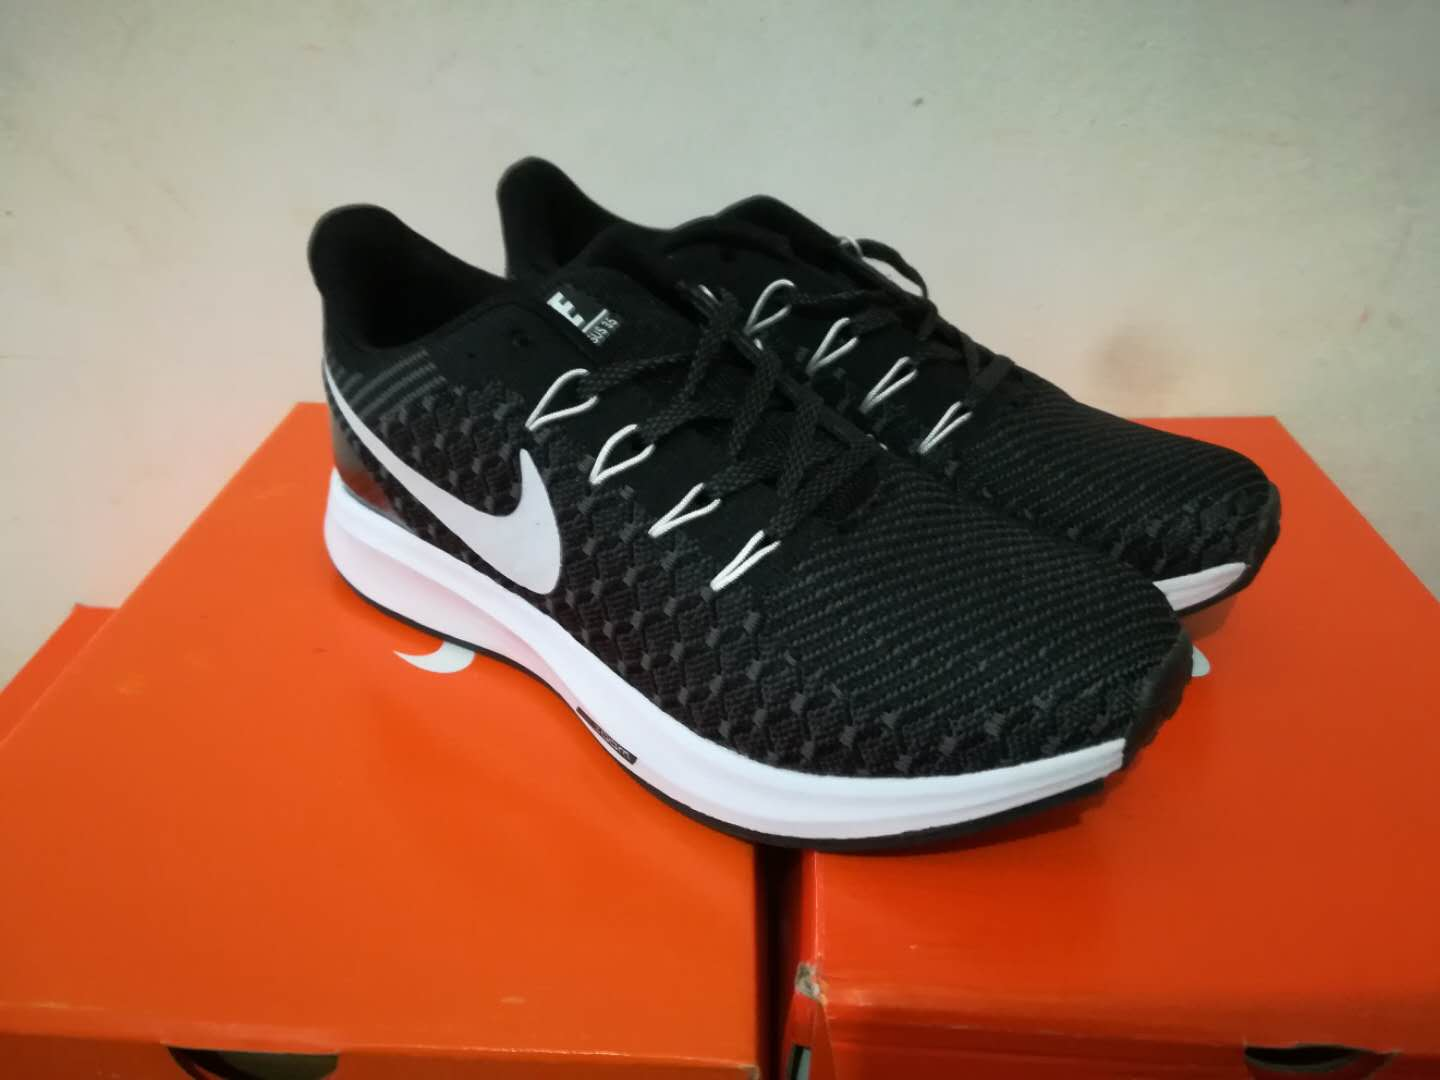 new style 29e98 826a9 Nike Flyknit Lunar 2 iD Black White Running Shoes